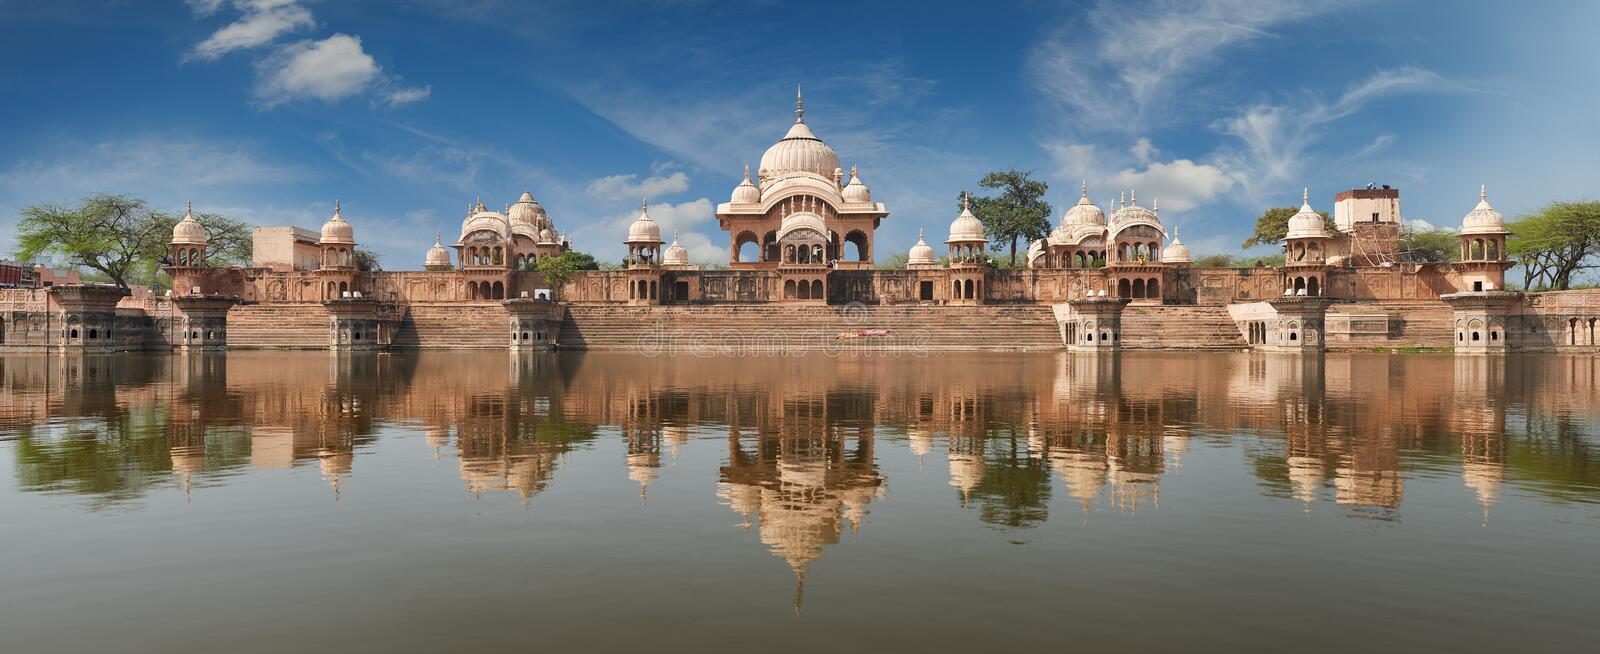 Kusum Sarovar in Mathura Uttar-Pradesh, India. Kusum Sarovar. This lake is one of the most visited places in Mathura. Next to it there are numerous temples and stock image